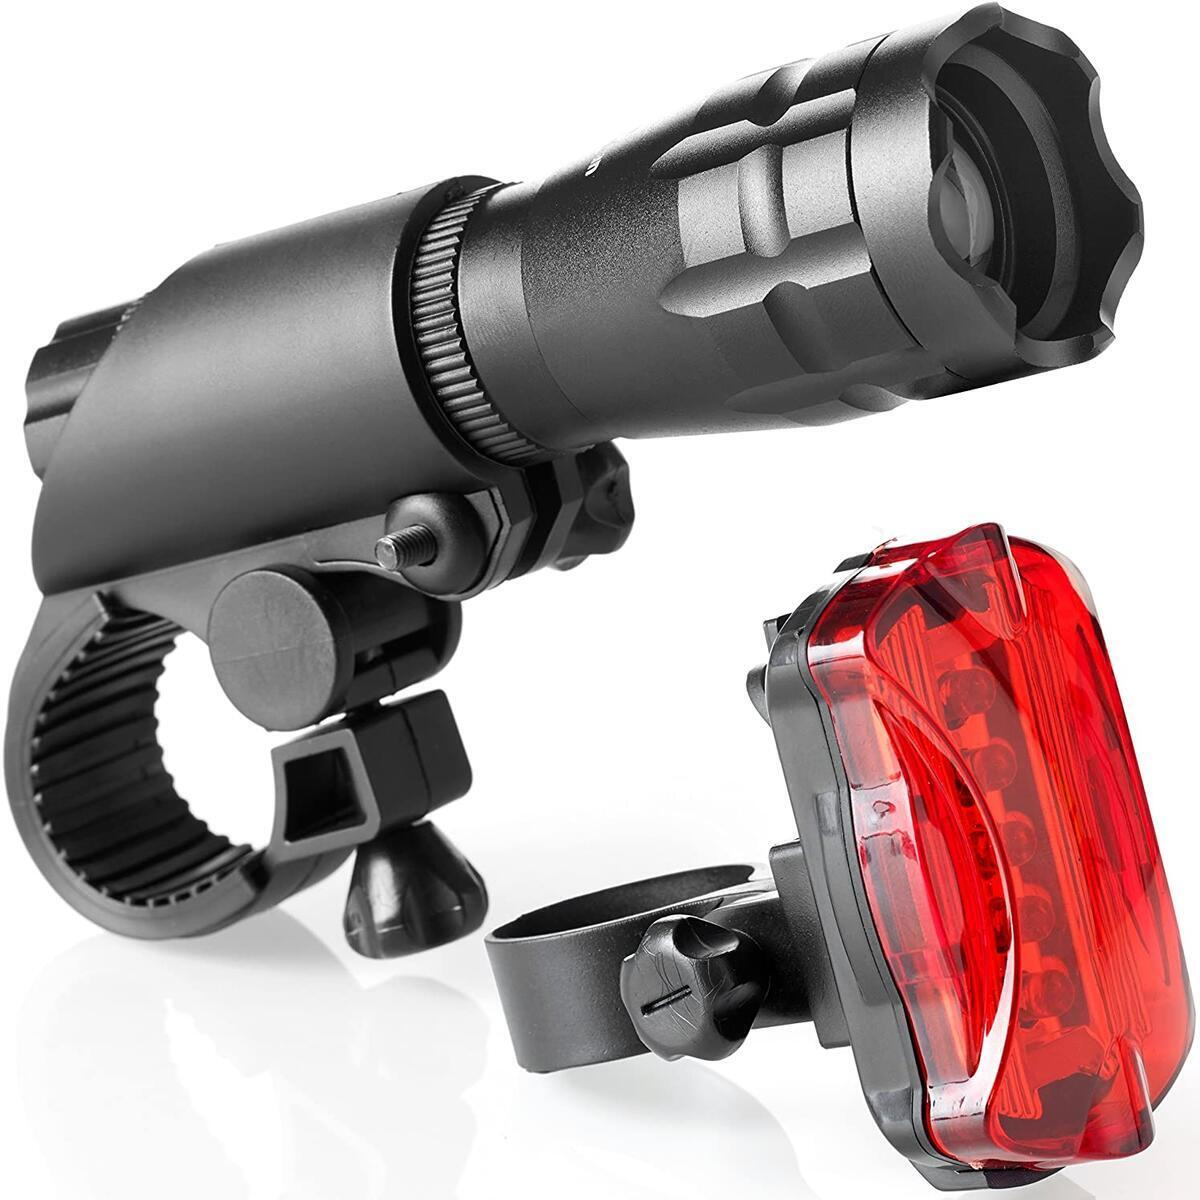 Bike Light Set - Battery Operated Front and Rear Lights - Fits Most Bicycles